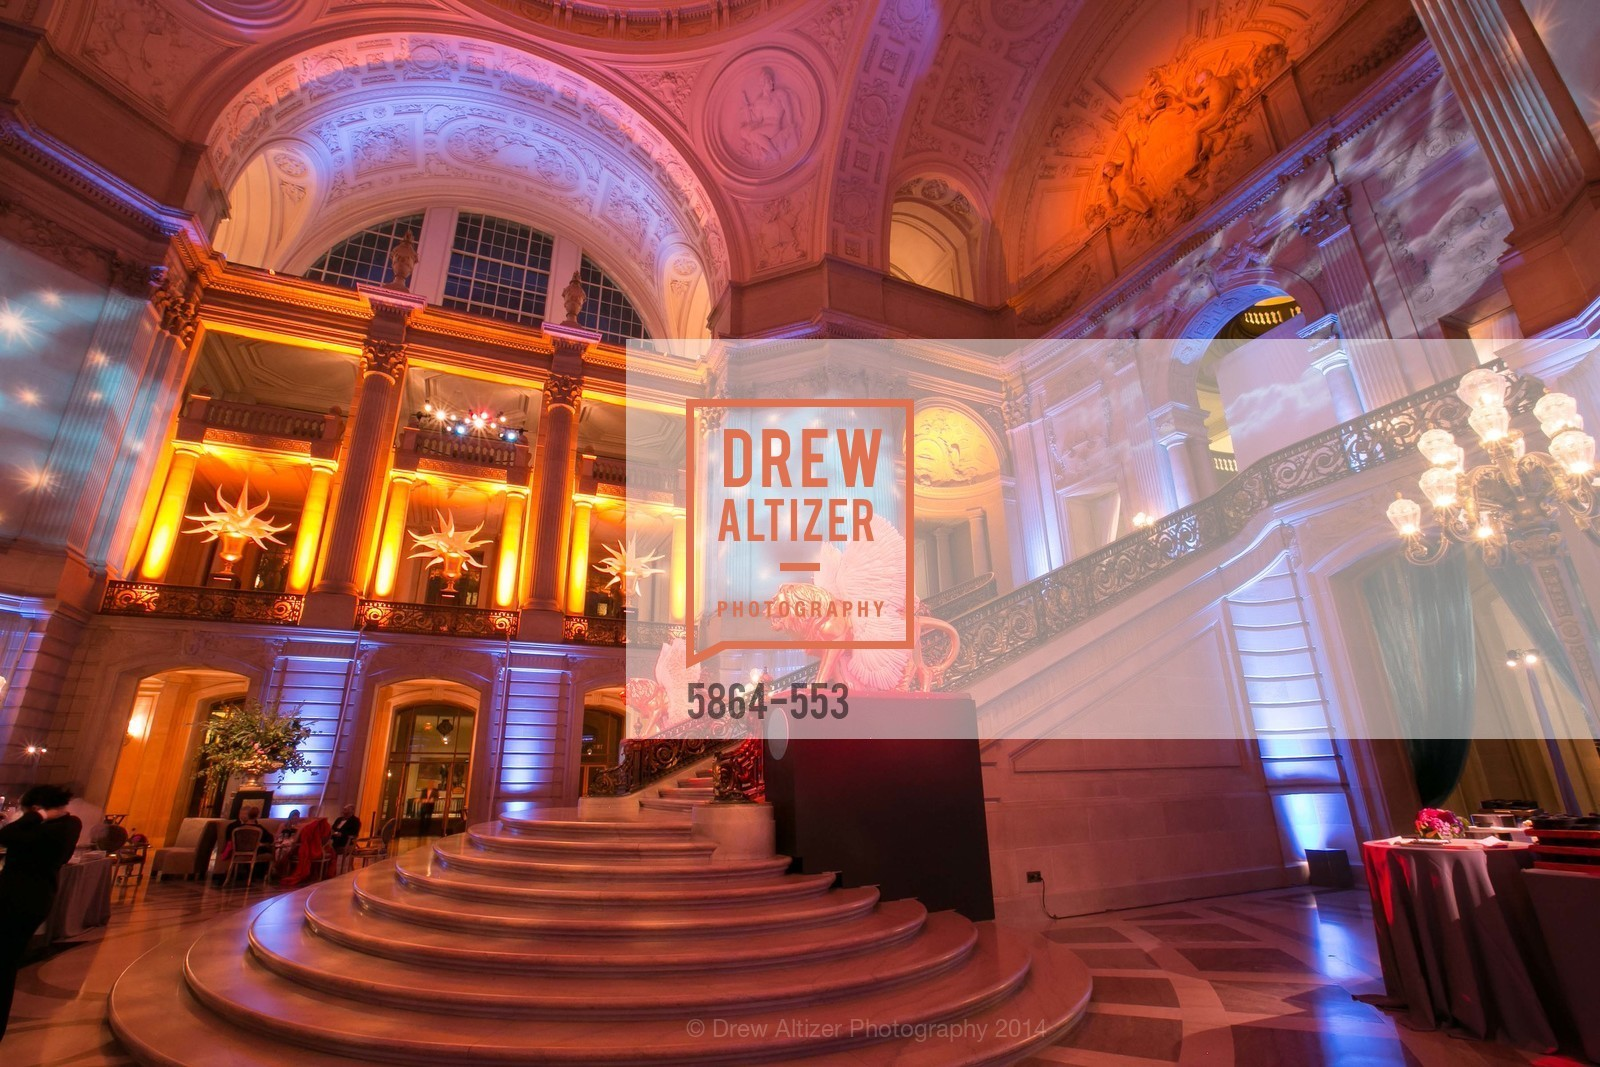 Atmosphere, SAN FRANCISCO OPERA'S 92nd Opera Ball 2014: PASSIONE, September 5th, 2014, Photo,Drew Altizer, Drew Altizer Photography, full-service agency, private events, San Francisco photographer, photographer california